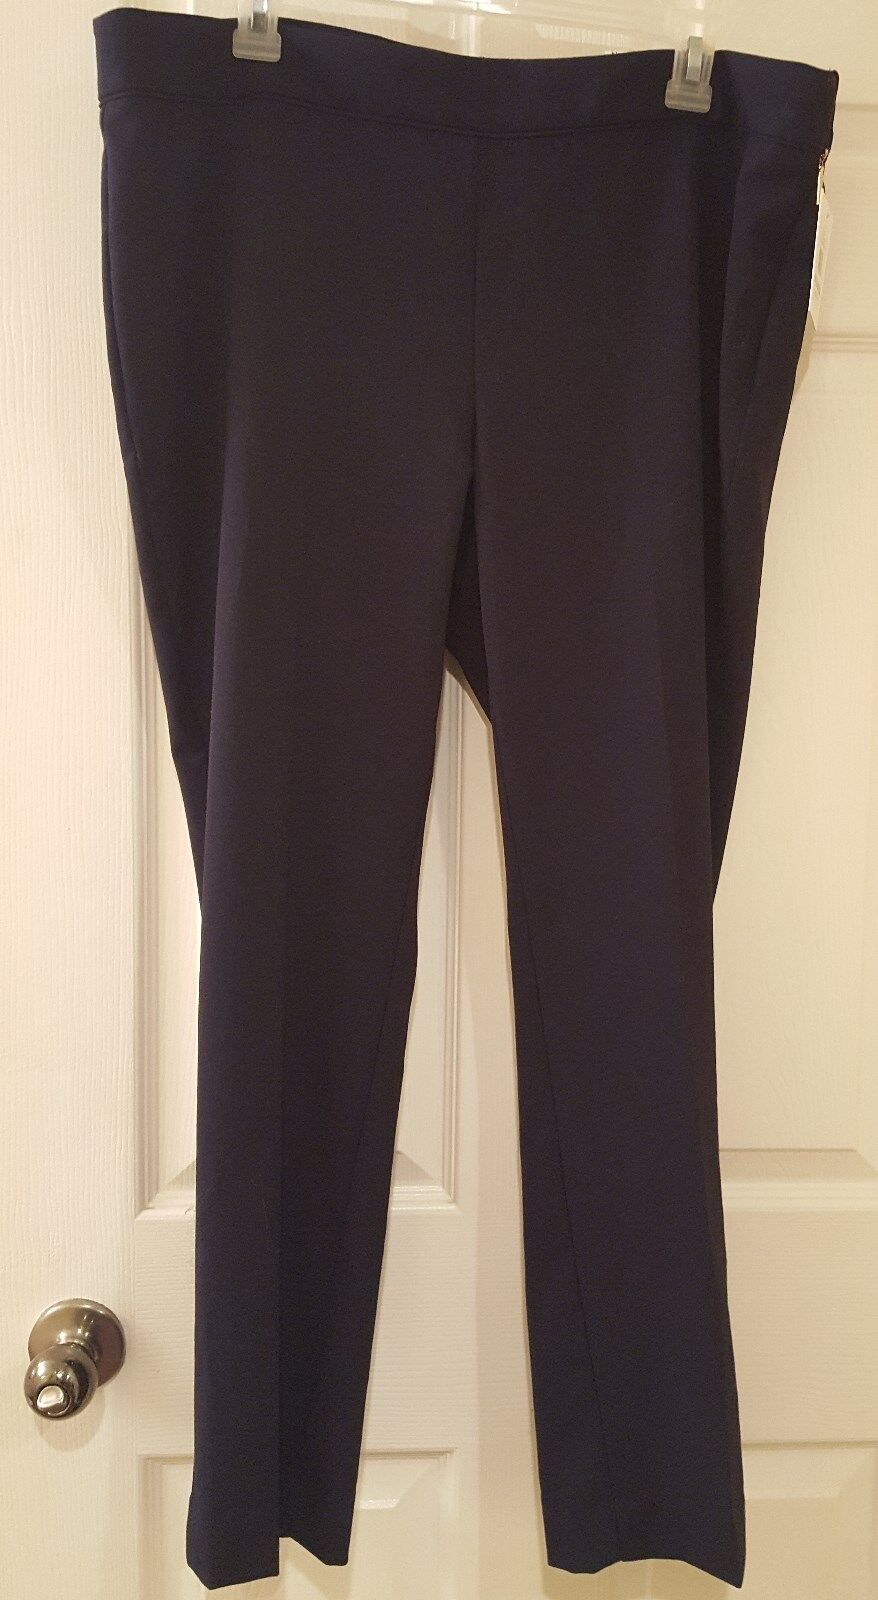 Pants by Ellen Tracy Modern Slim ankle pants SZ 14 MSRP  79.50 NWT  bluee color